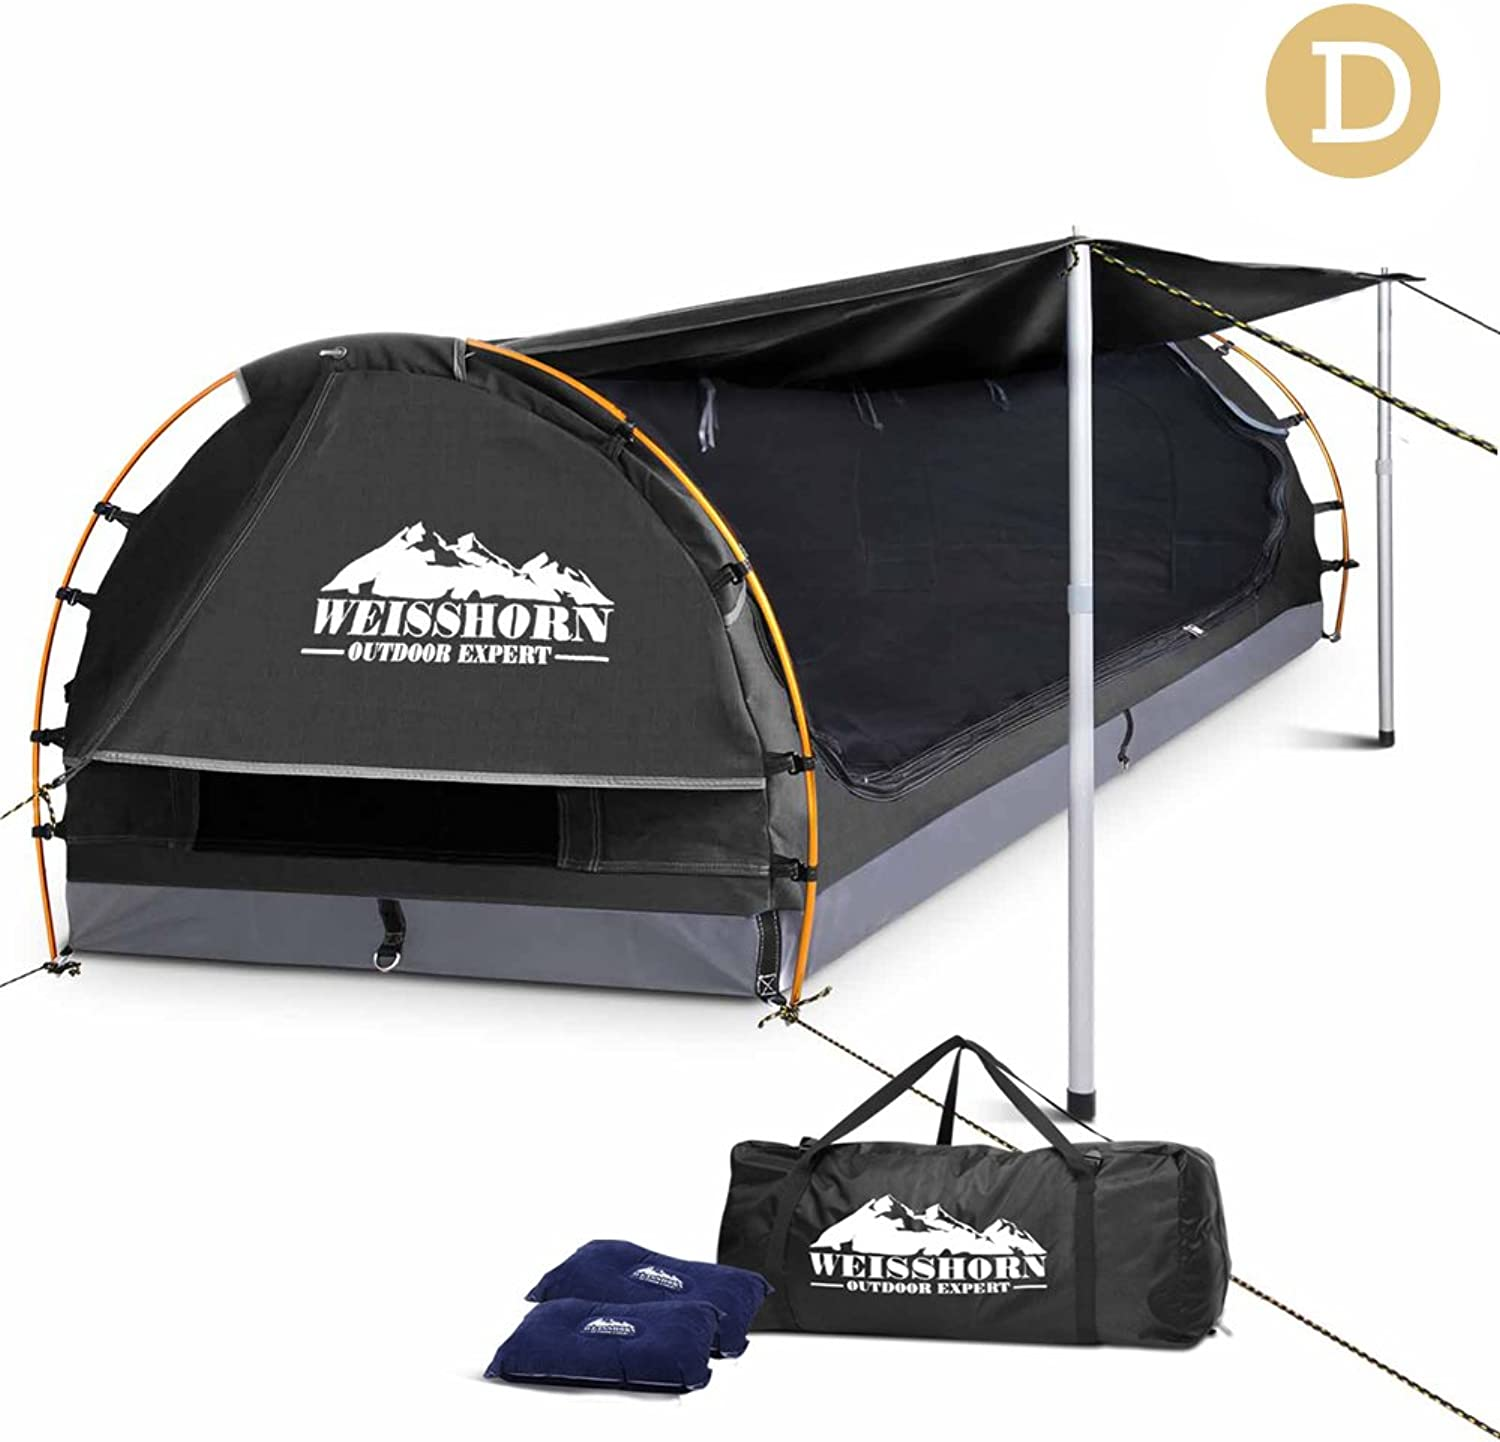 Double Dome Canvas Tent w  2 Pillows Camping Hiking Outdoor Picnic Swag Equipment Shelter UV Resistant  Dark Grey